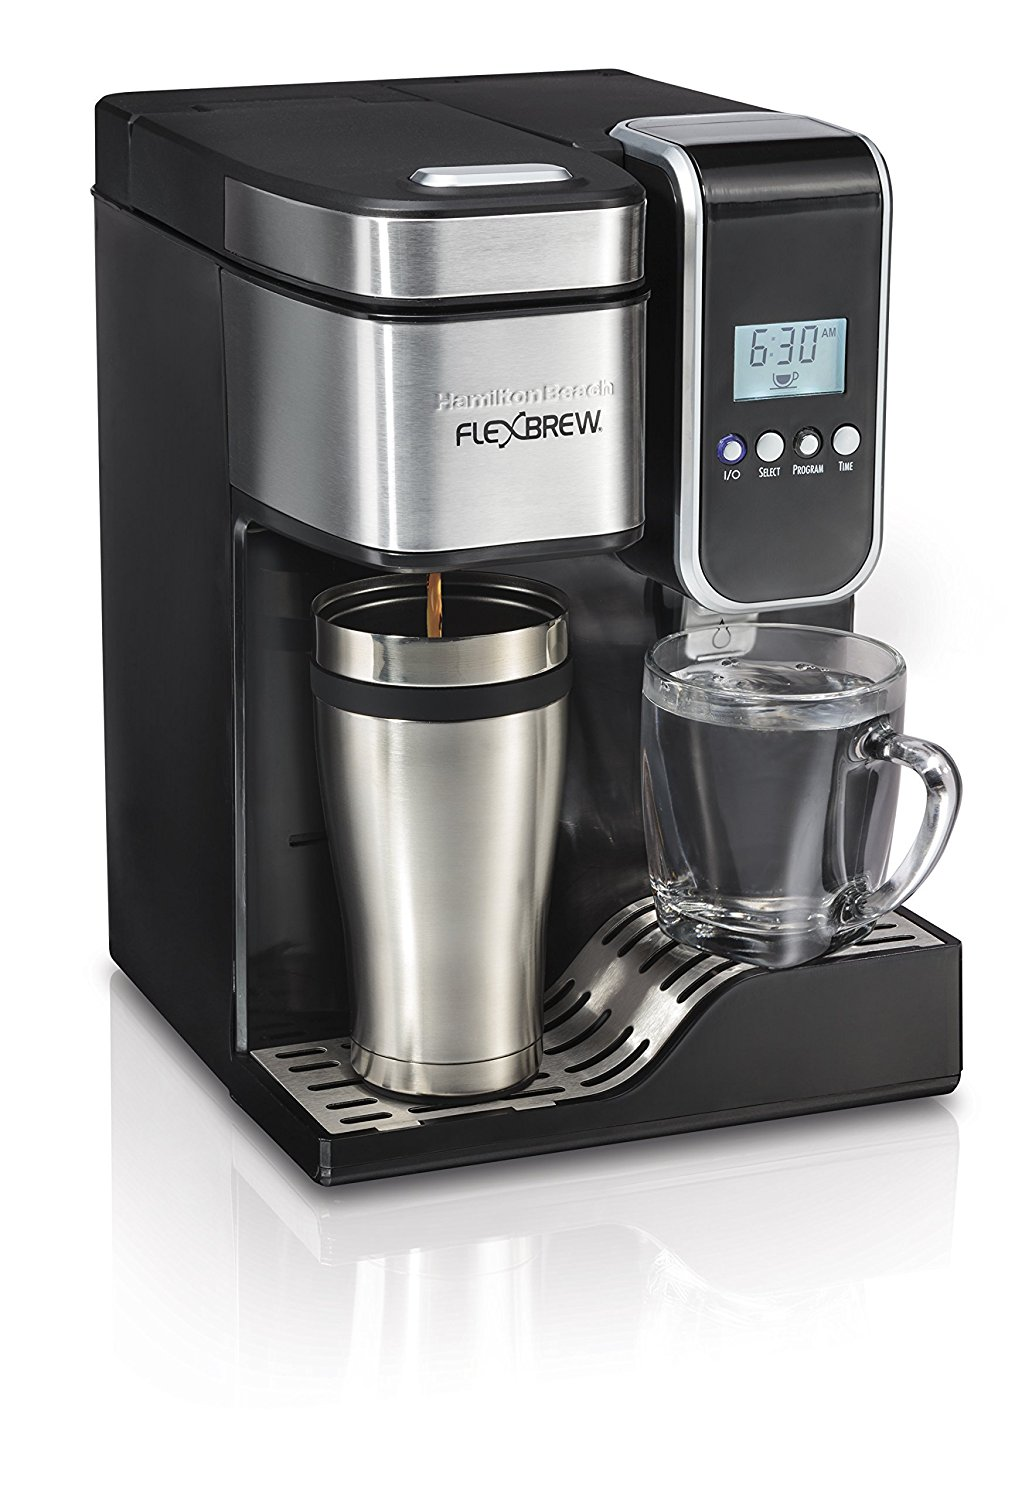 Top 10 best coffee maker for home and office for Best coffee maker